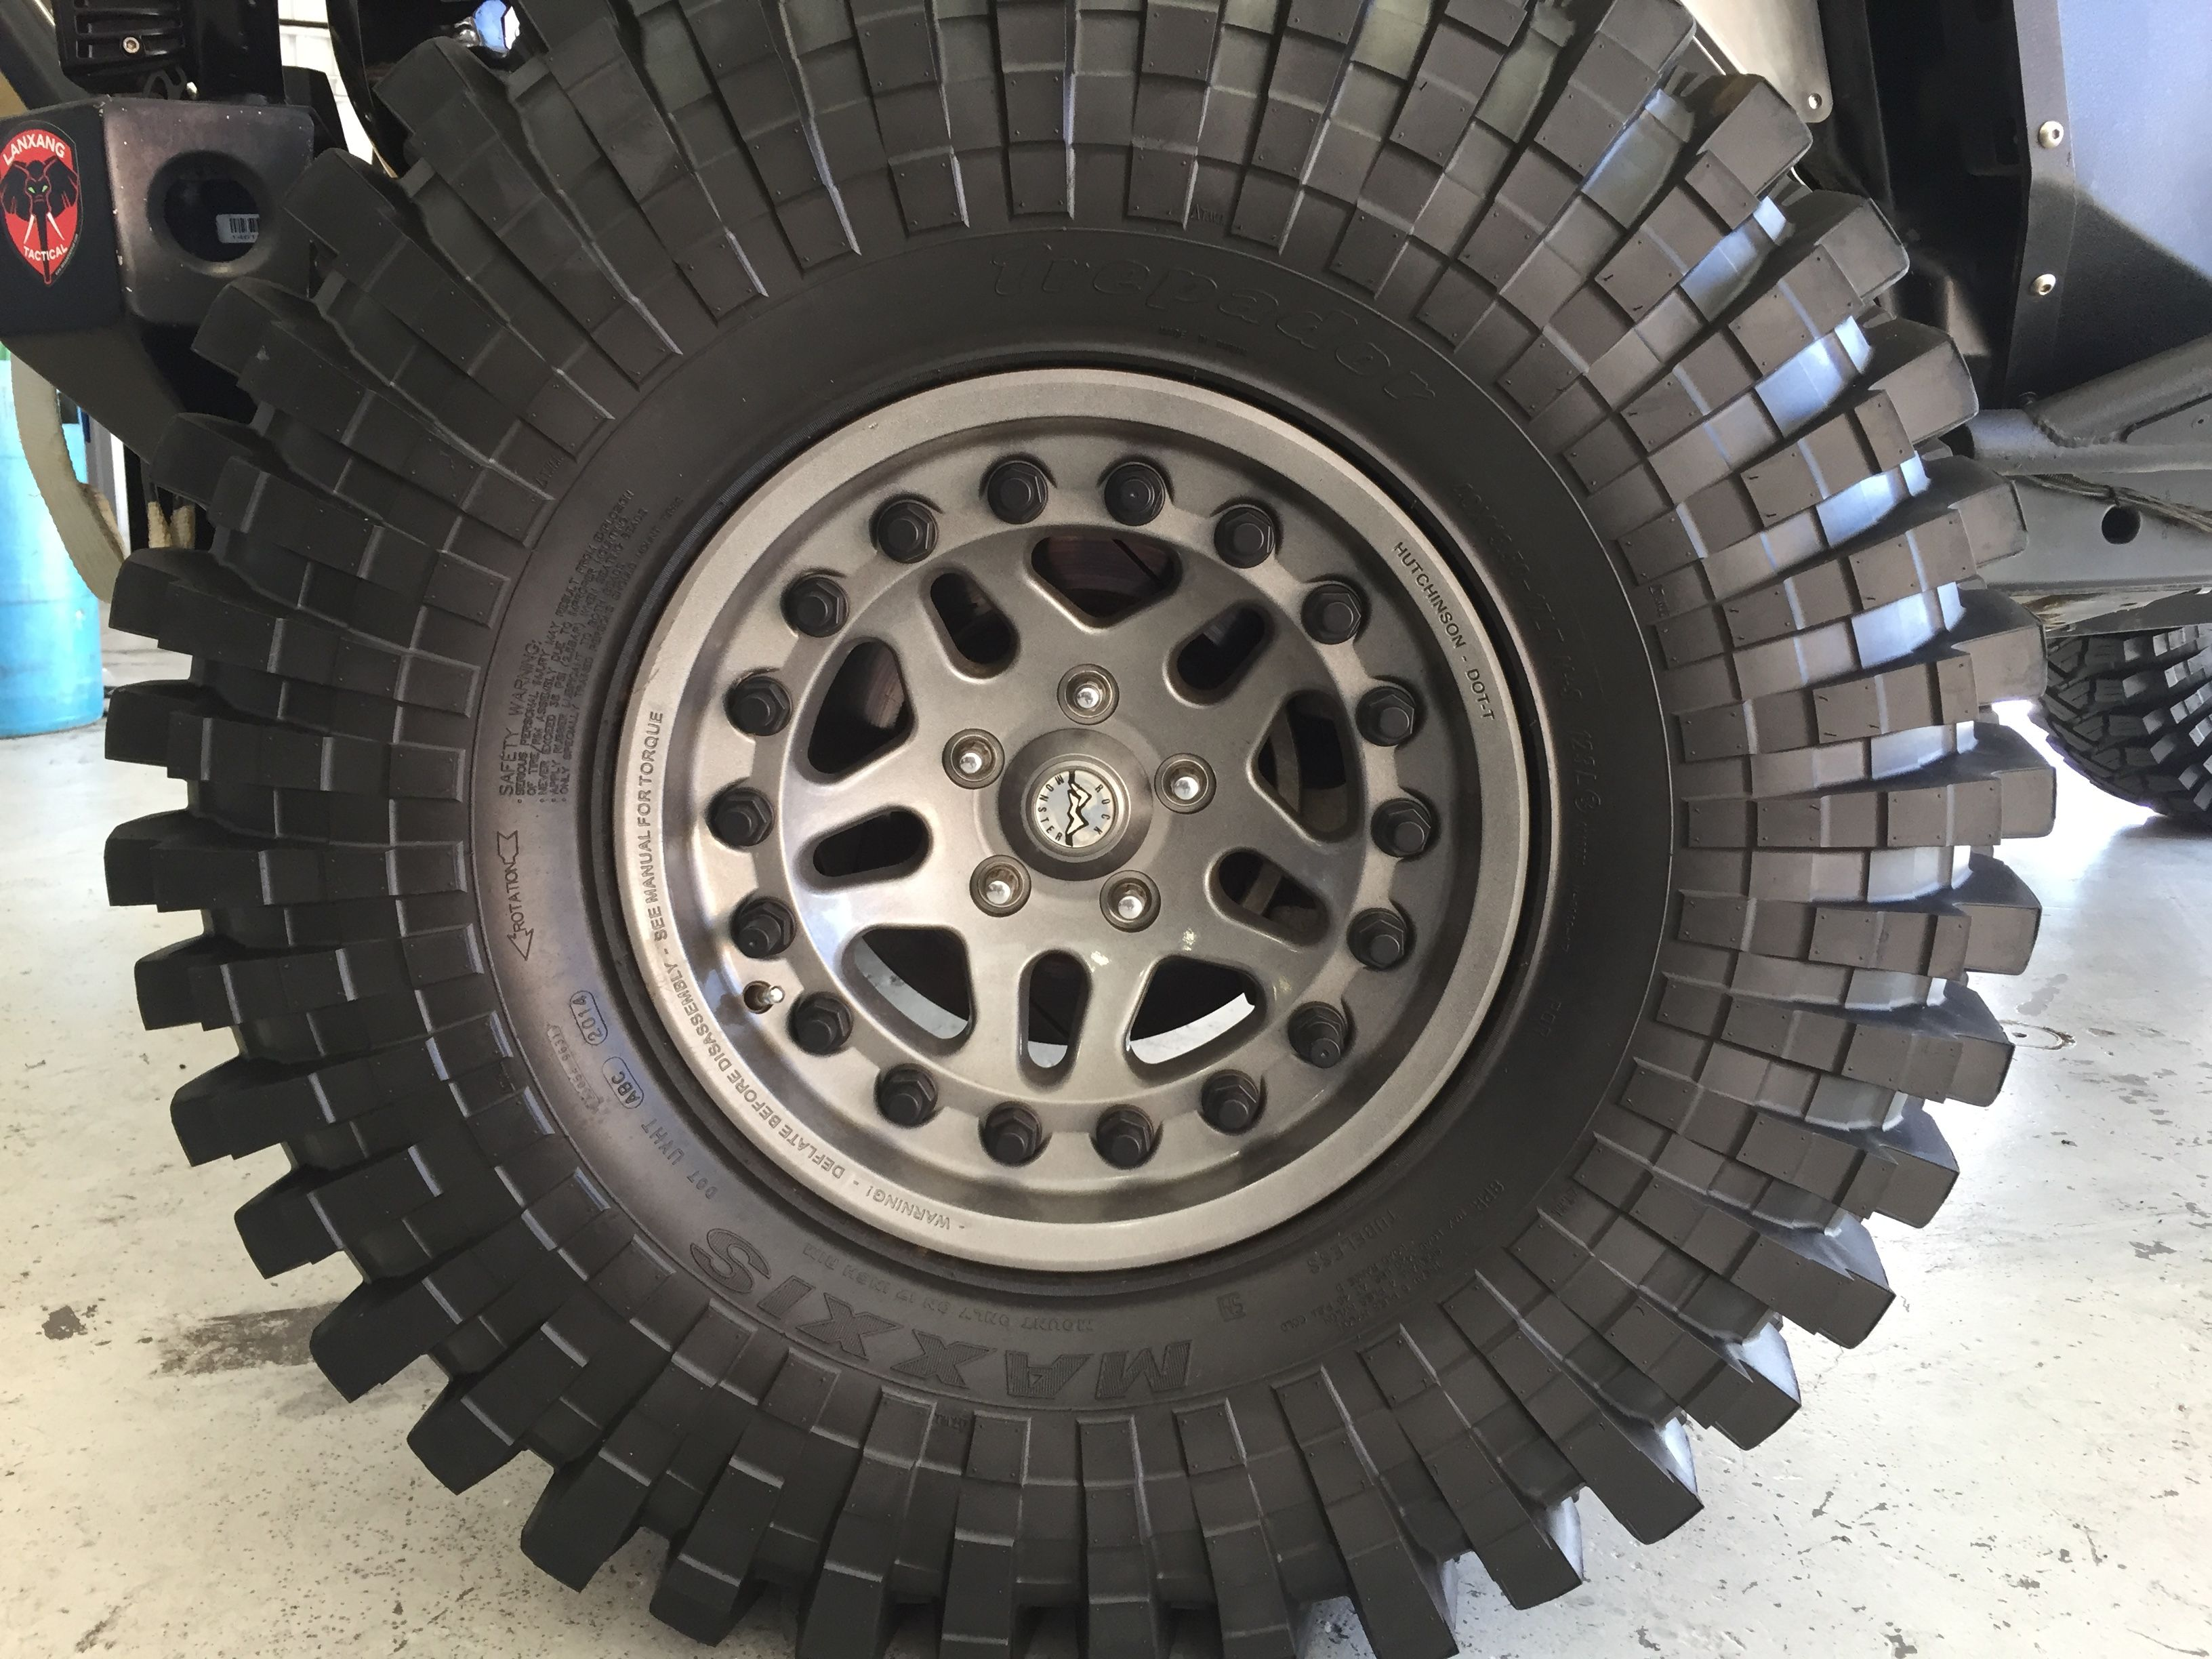 Pin By Charles Graves On Jeep Ford Ranger Cool Trucks Truck Wheels